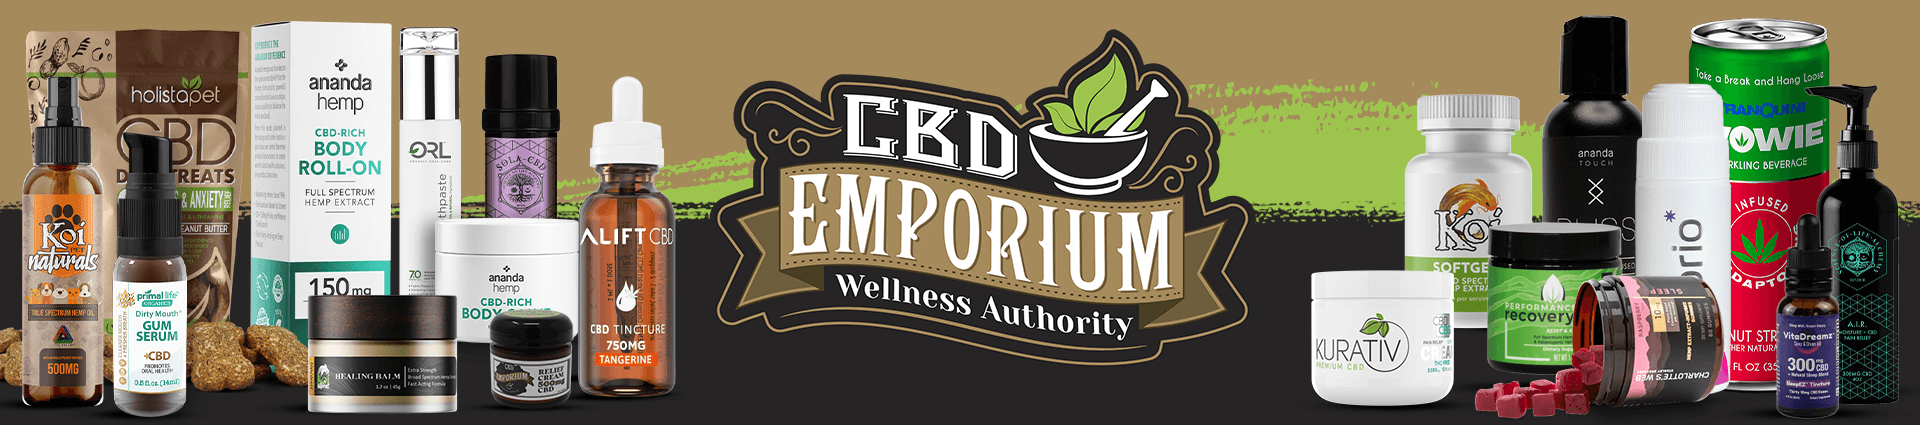 CBD Emporium Product Collage